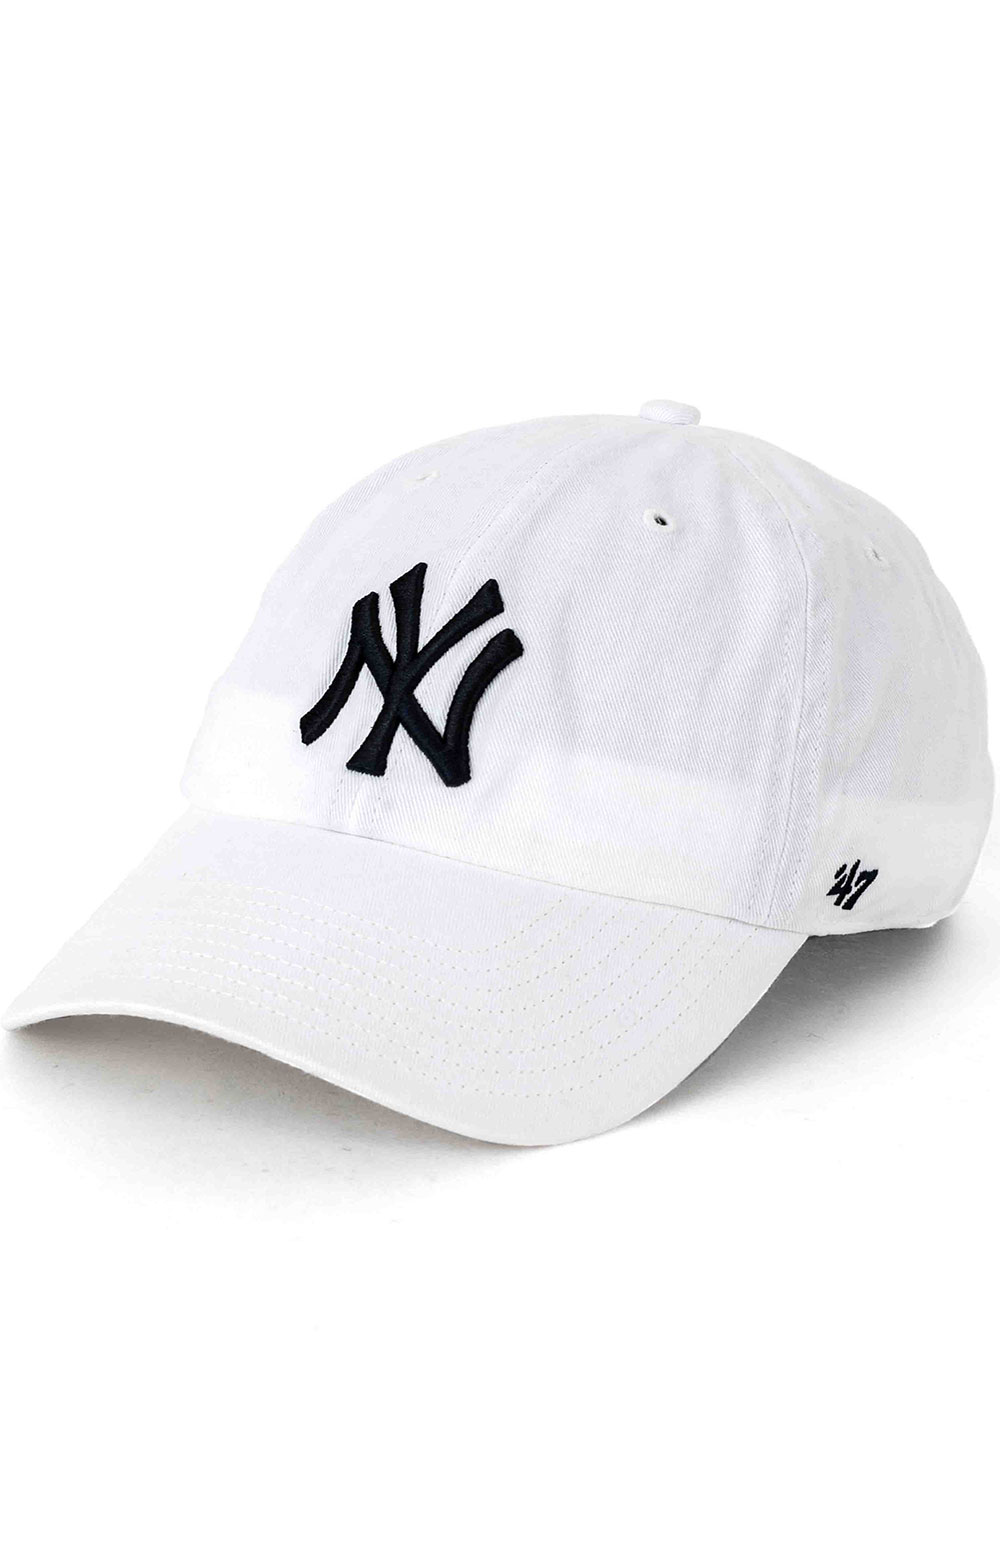 New York Yankees 47 Clean Up Cap - White